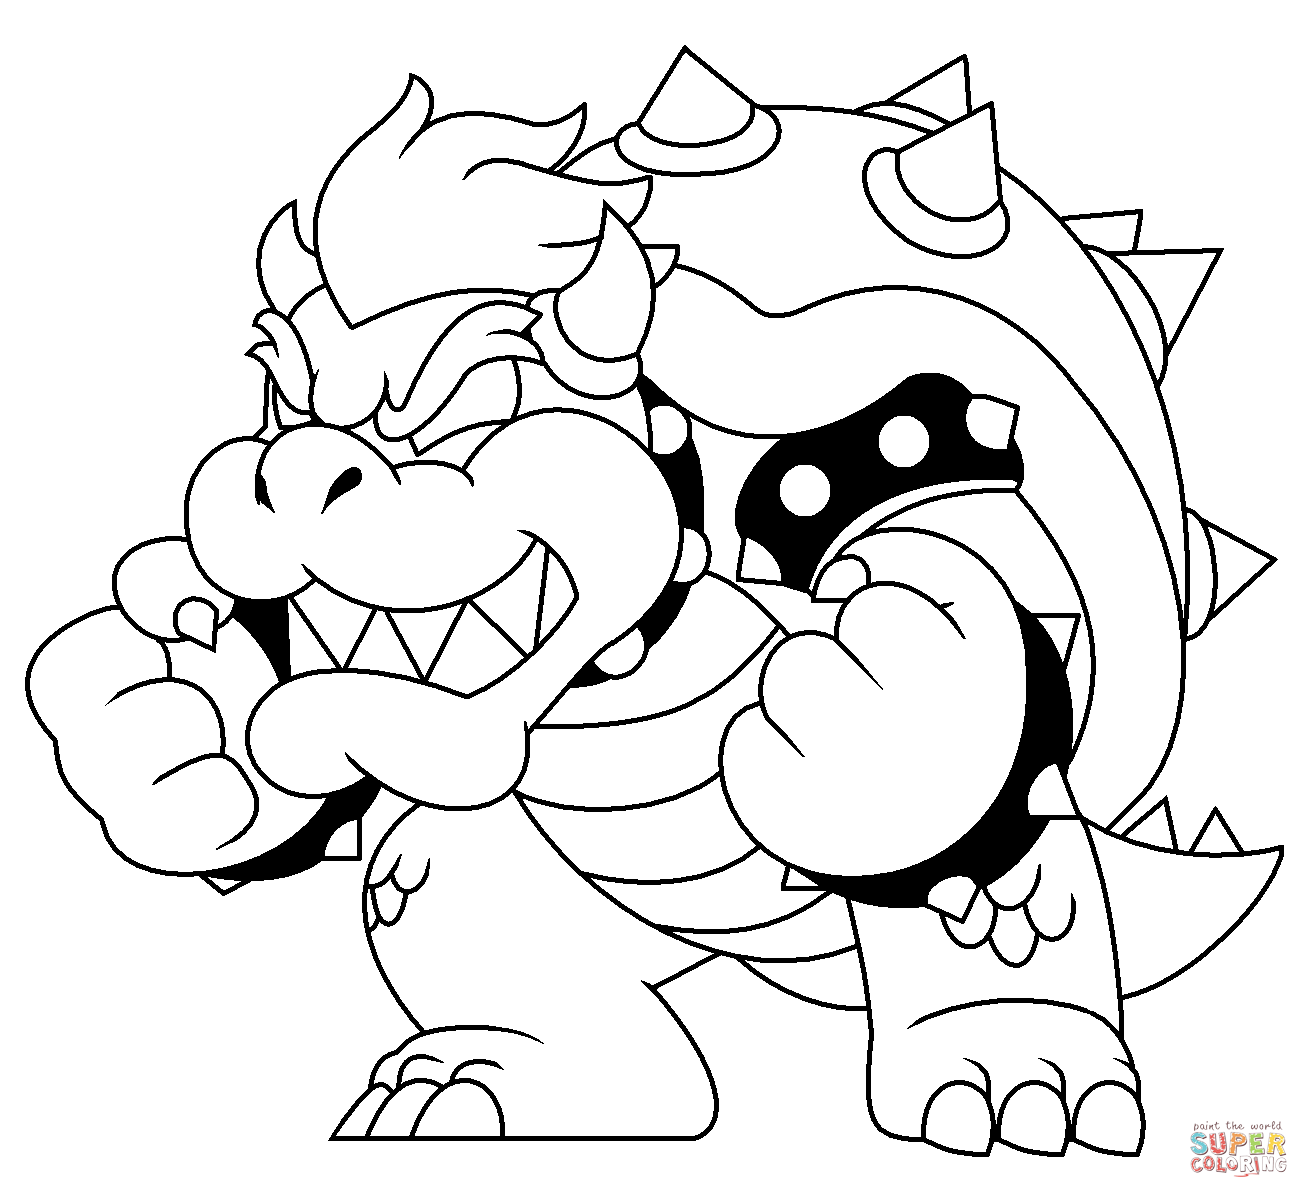 Bowser Coloring Page Free Printable Coloring Pages Mario Coloring Pages Super Mario Coloring Pages Coloring Pages